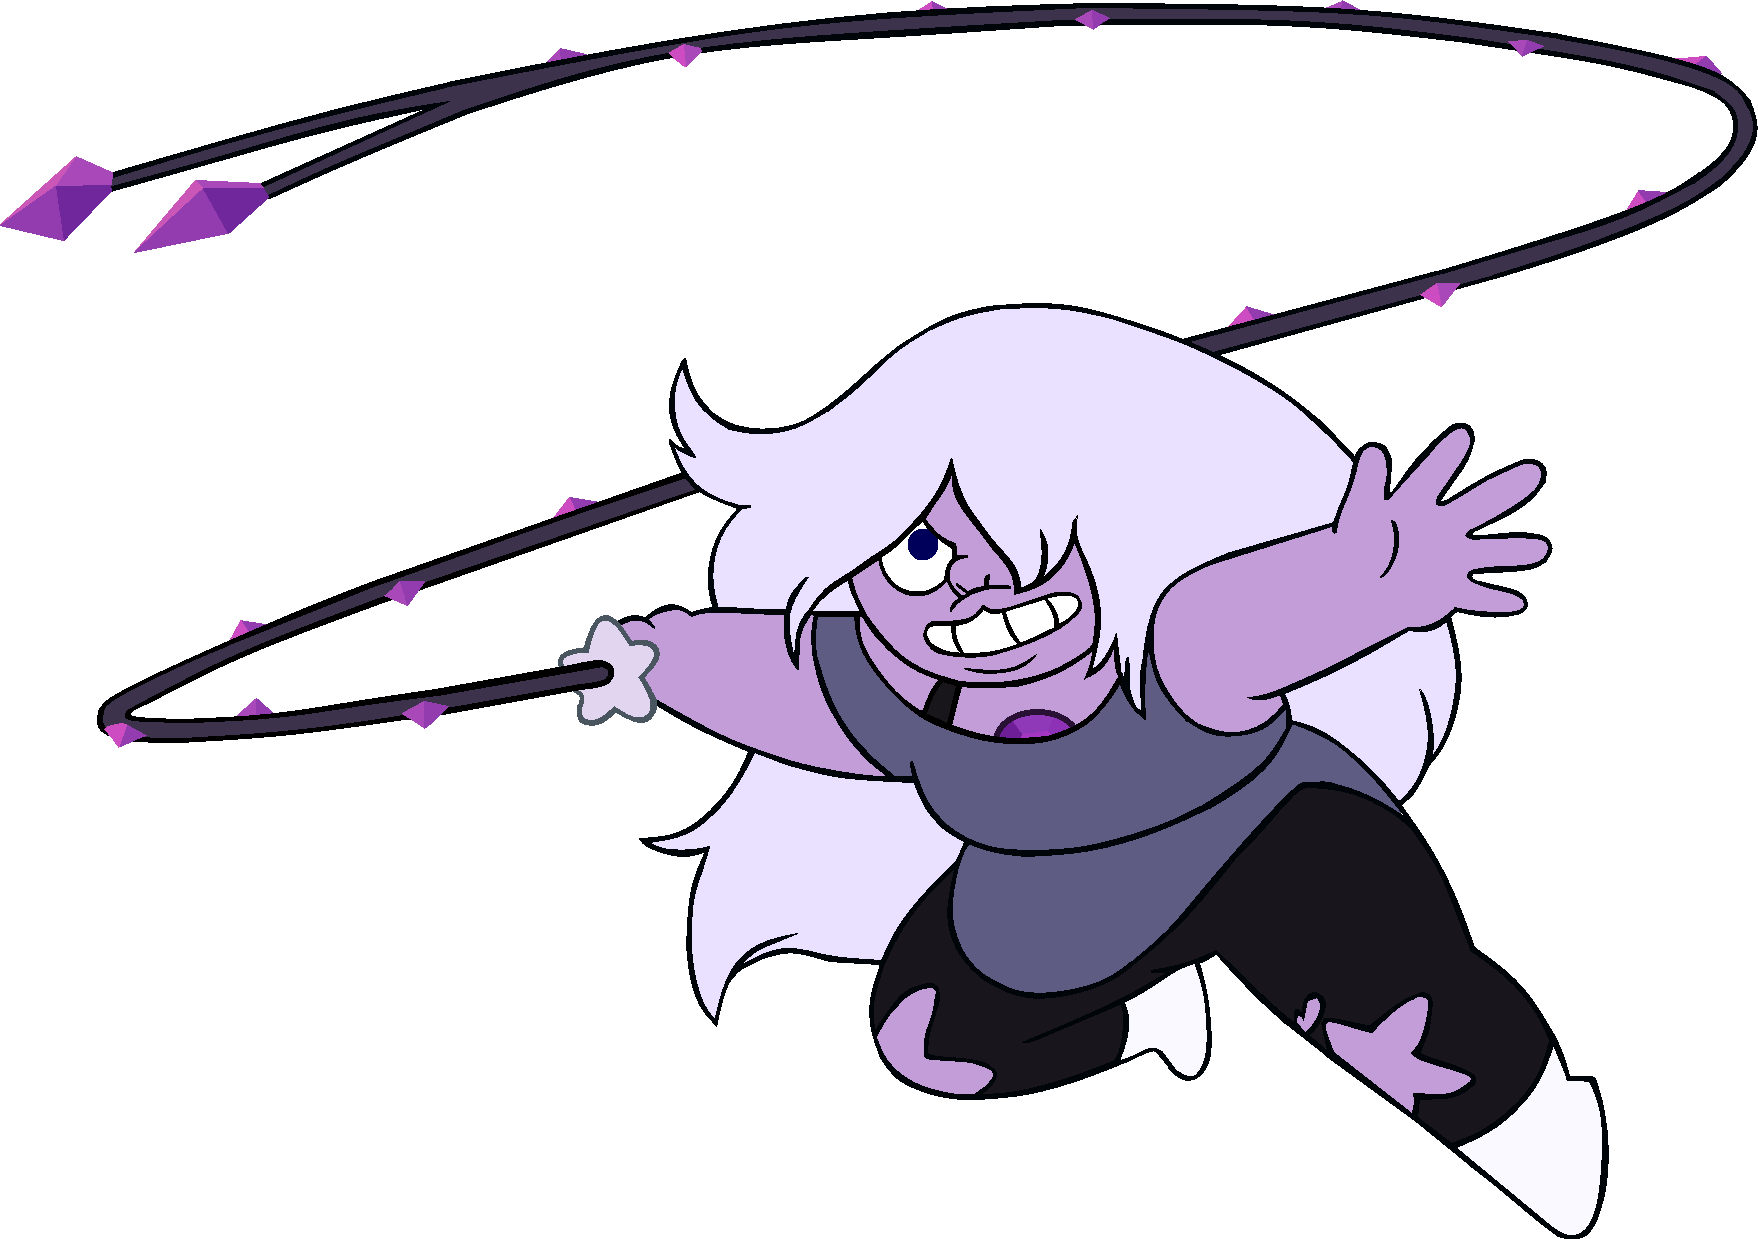 Image amethyst and png. Whip clipart comic